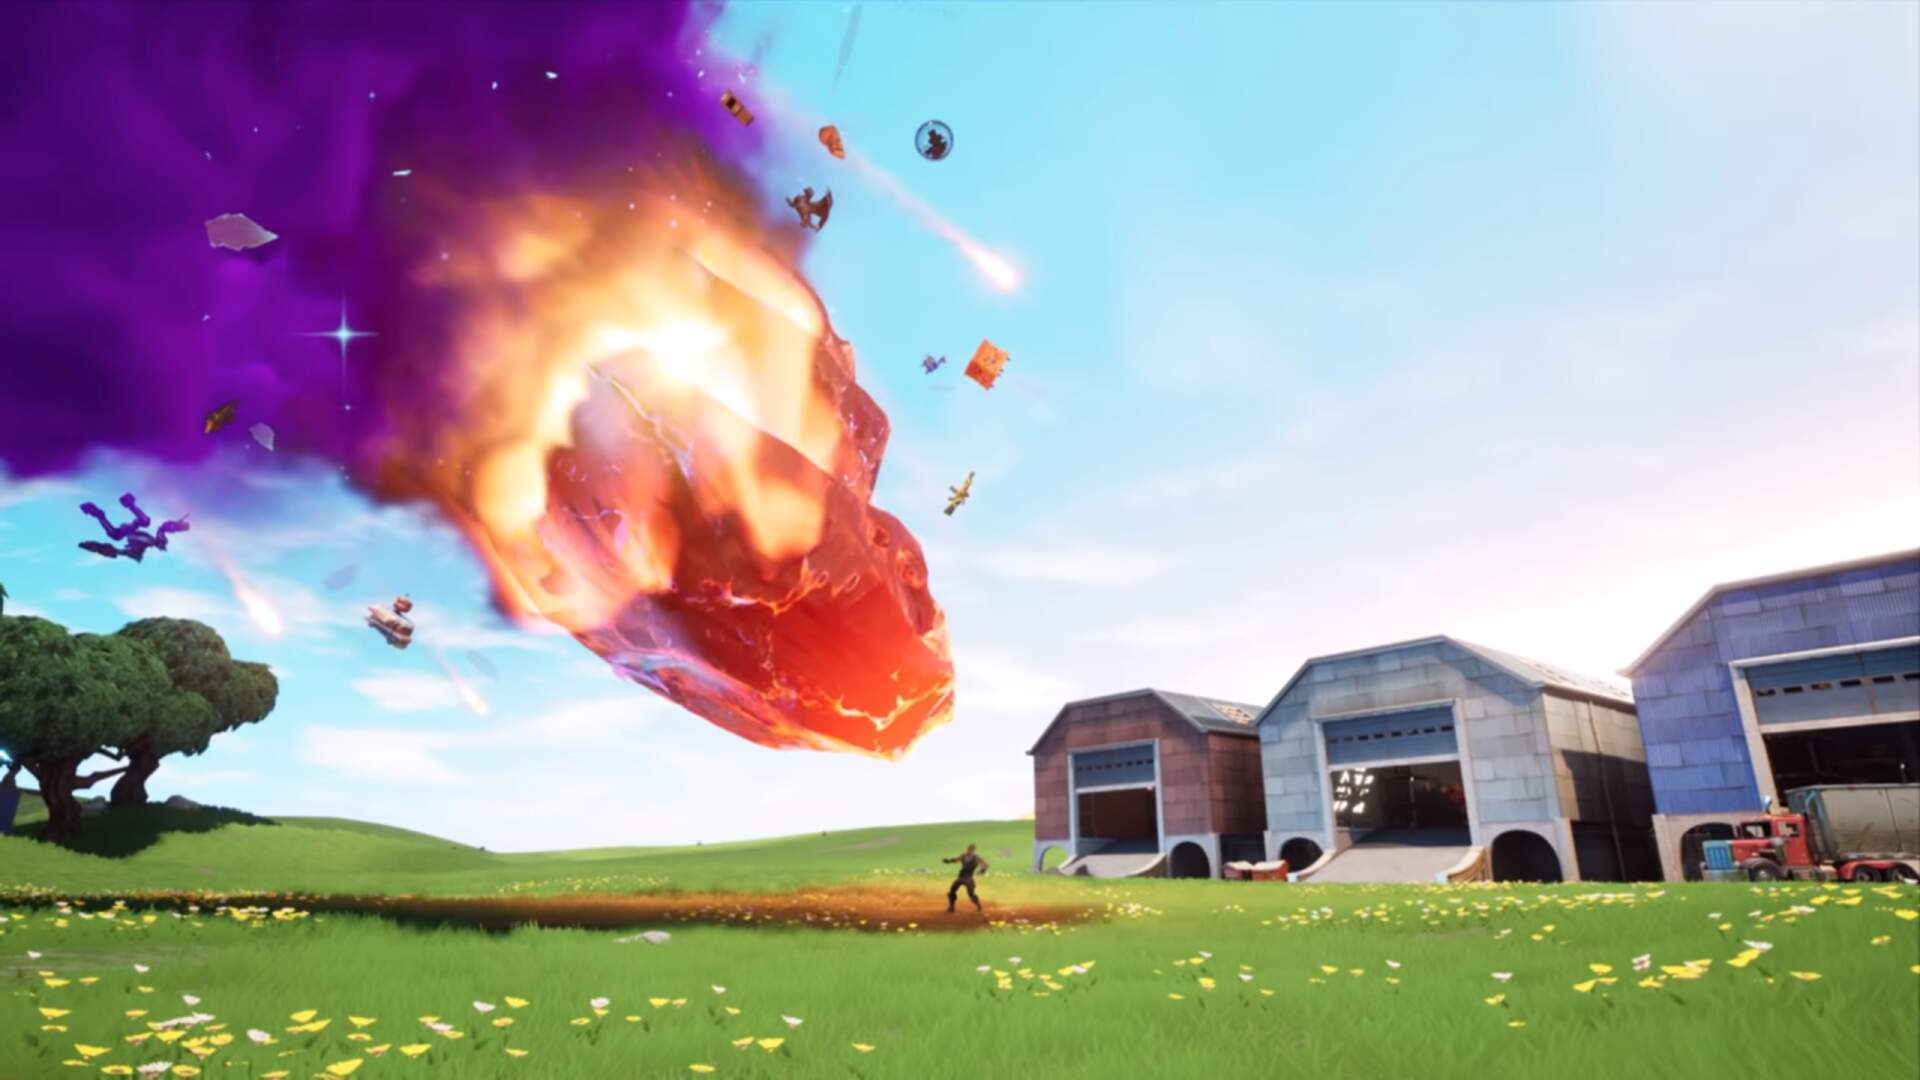 Here's Your First Glimpse of Fortnite Chapter 2, Thanks to This Leaked Trailer